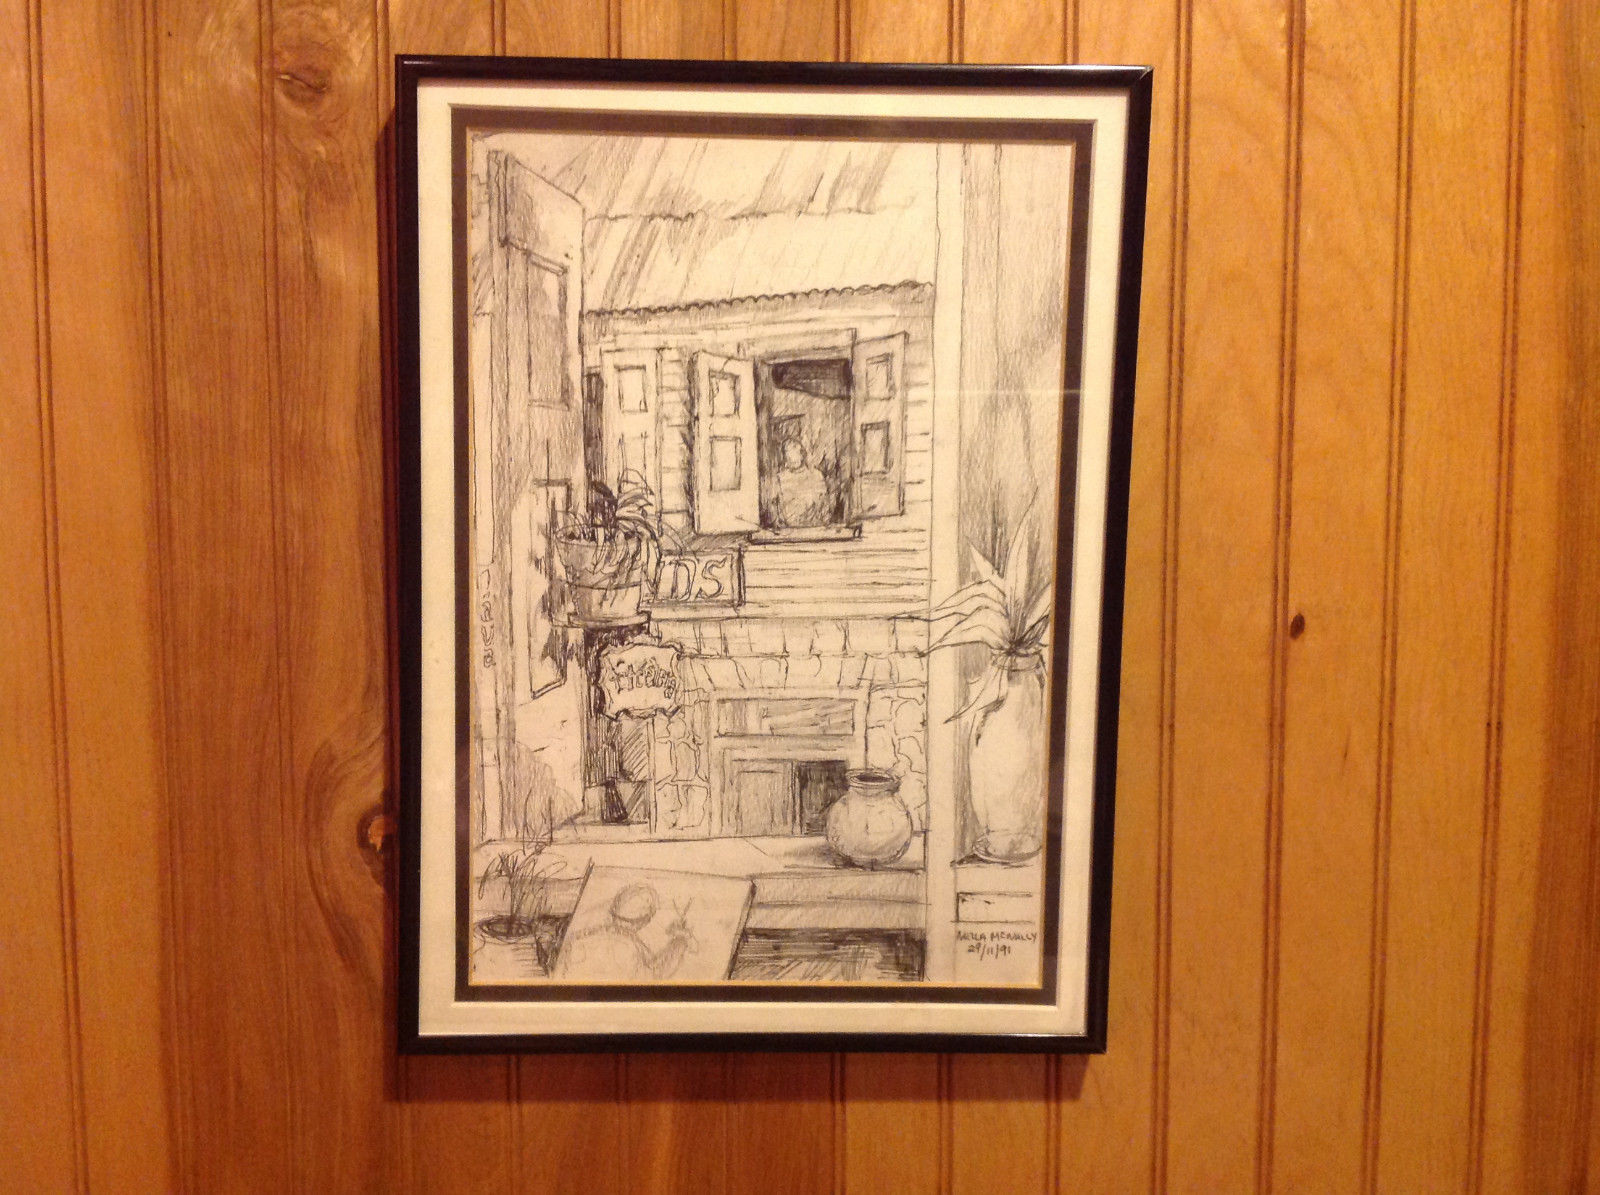 Pencil Drawing by Nella McNally Framed Ready to Hang Signature and Dated